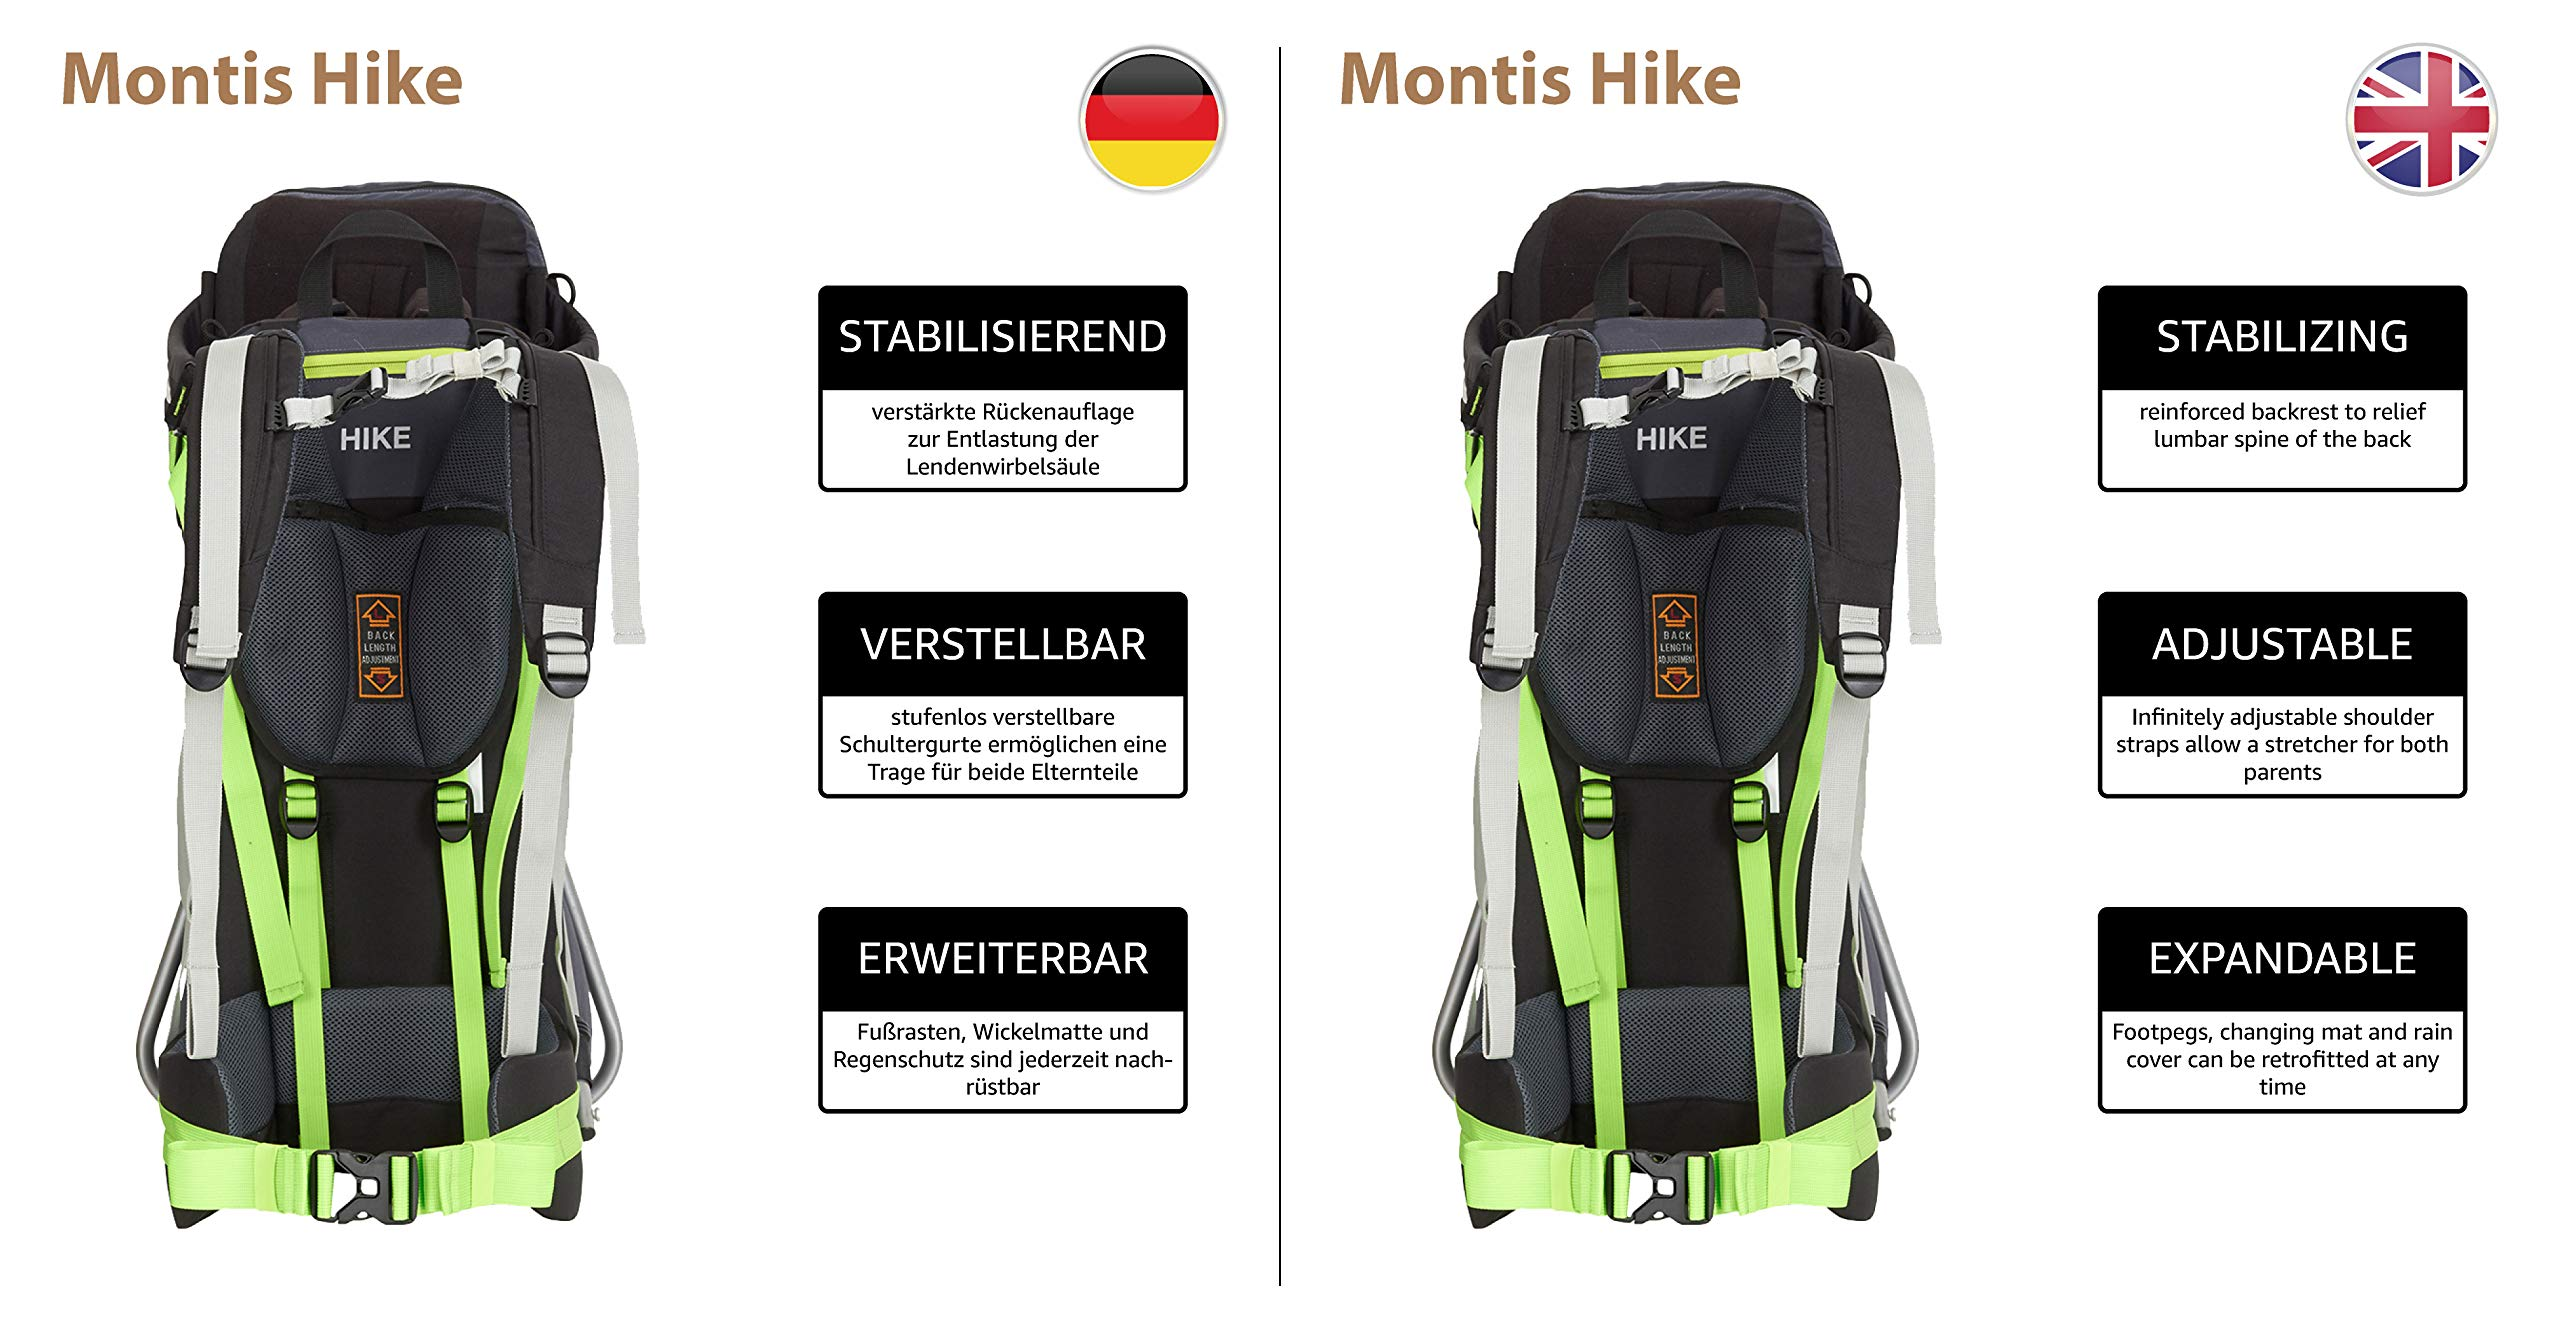 MONTIS HIKE, Premium Back Baby/Child Carrier, Up to 25kg, (black) M MONTIS OUTDOOR 89cm high, 37cm wide | up to 25kg | various colours | 28L seat bag Laminated and dirt-repellant outer material | approx. 2.2kg (without extras) Fully-adjustable, padded 5-point child's safety harness | plush lining, raised wind guard, can be filled from both sides | forehead cushion 6